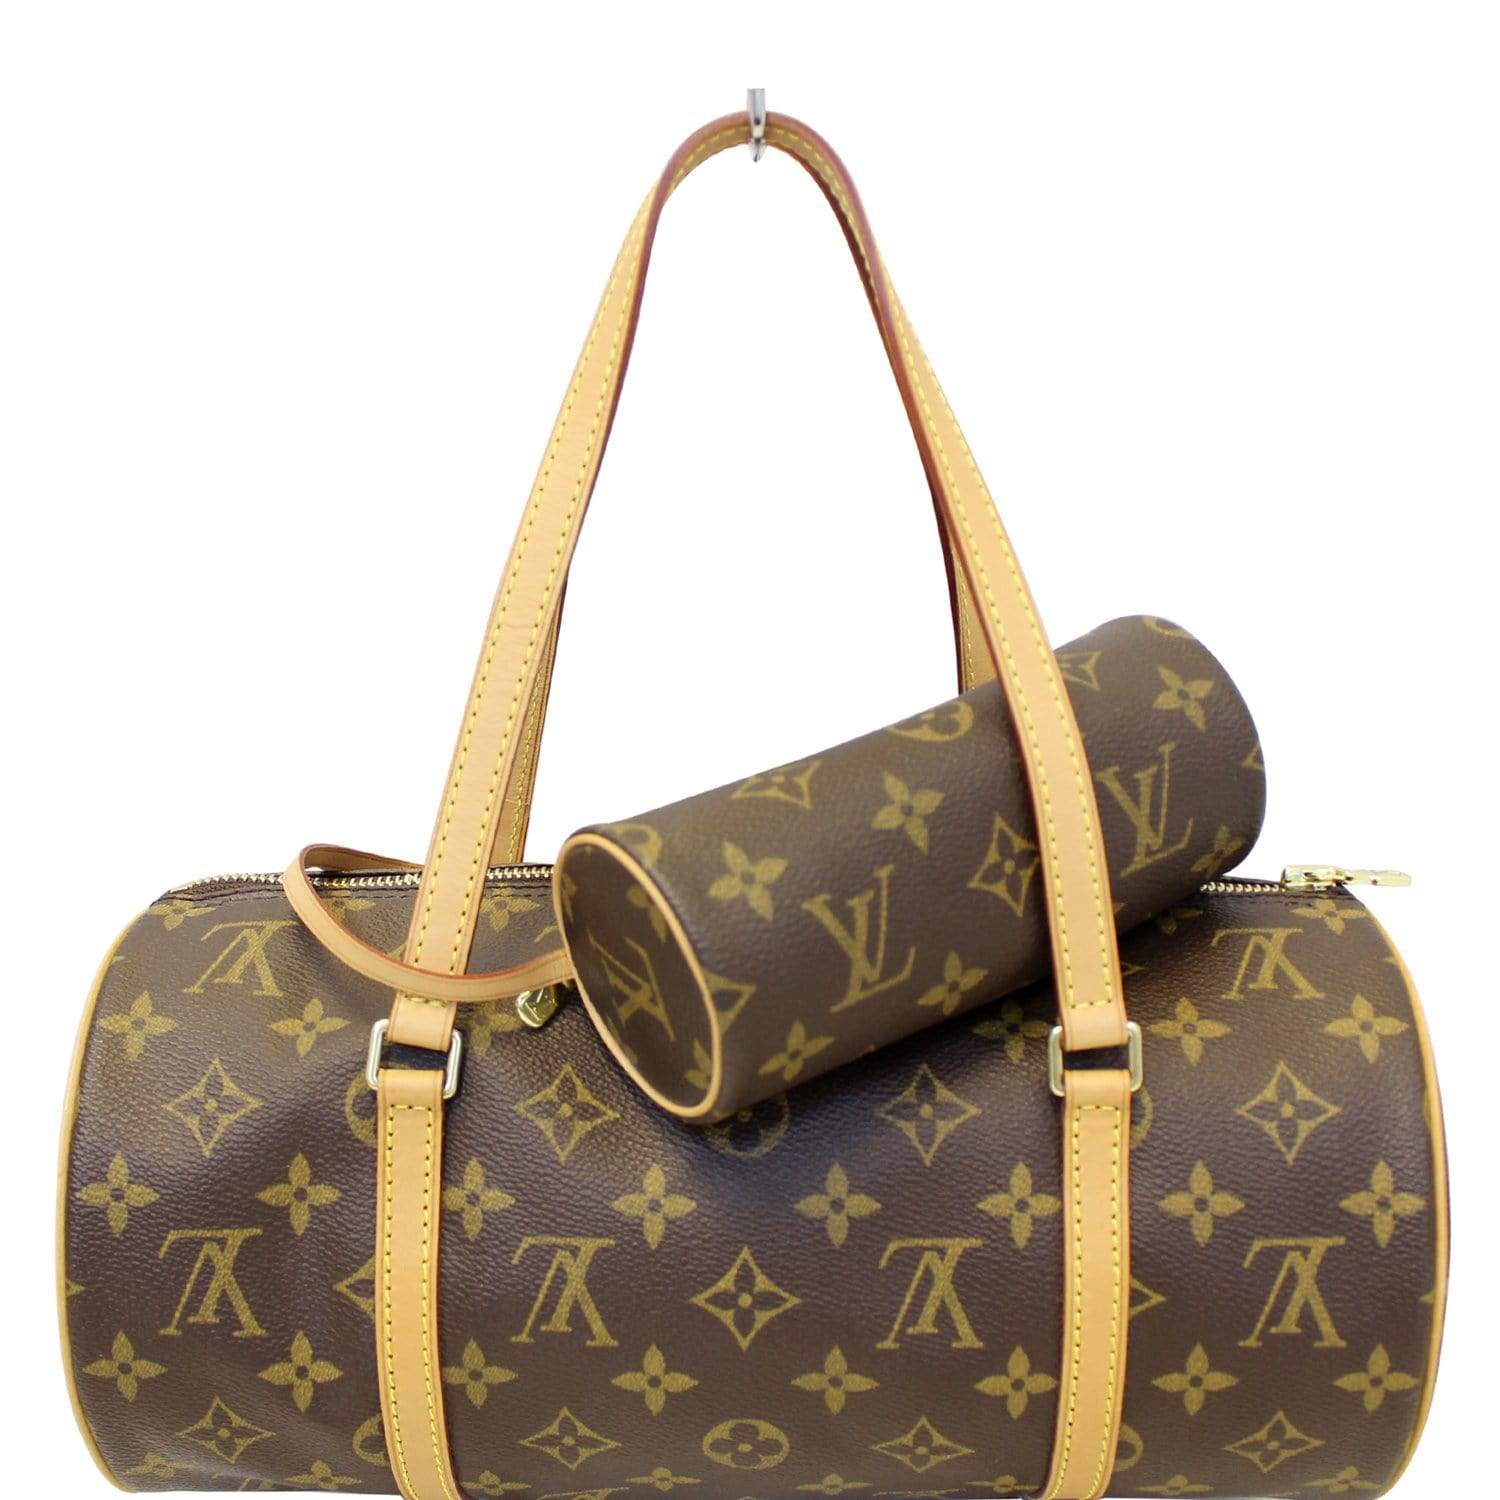 LOUIS VUITTON Papillon 30 Monogram Canvas Shoulder Bag-US 07dad8cb64667